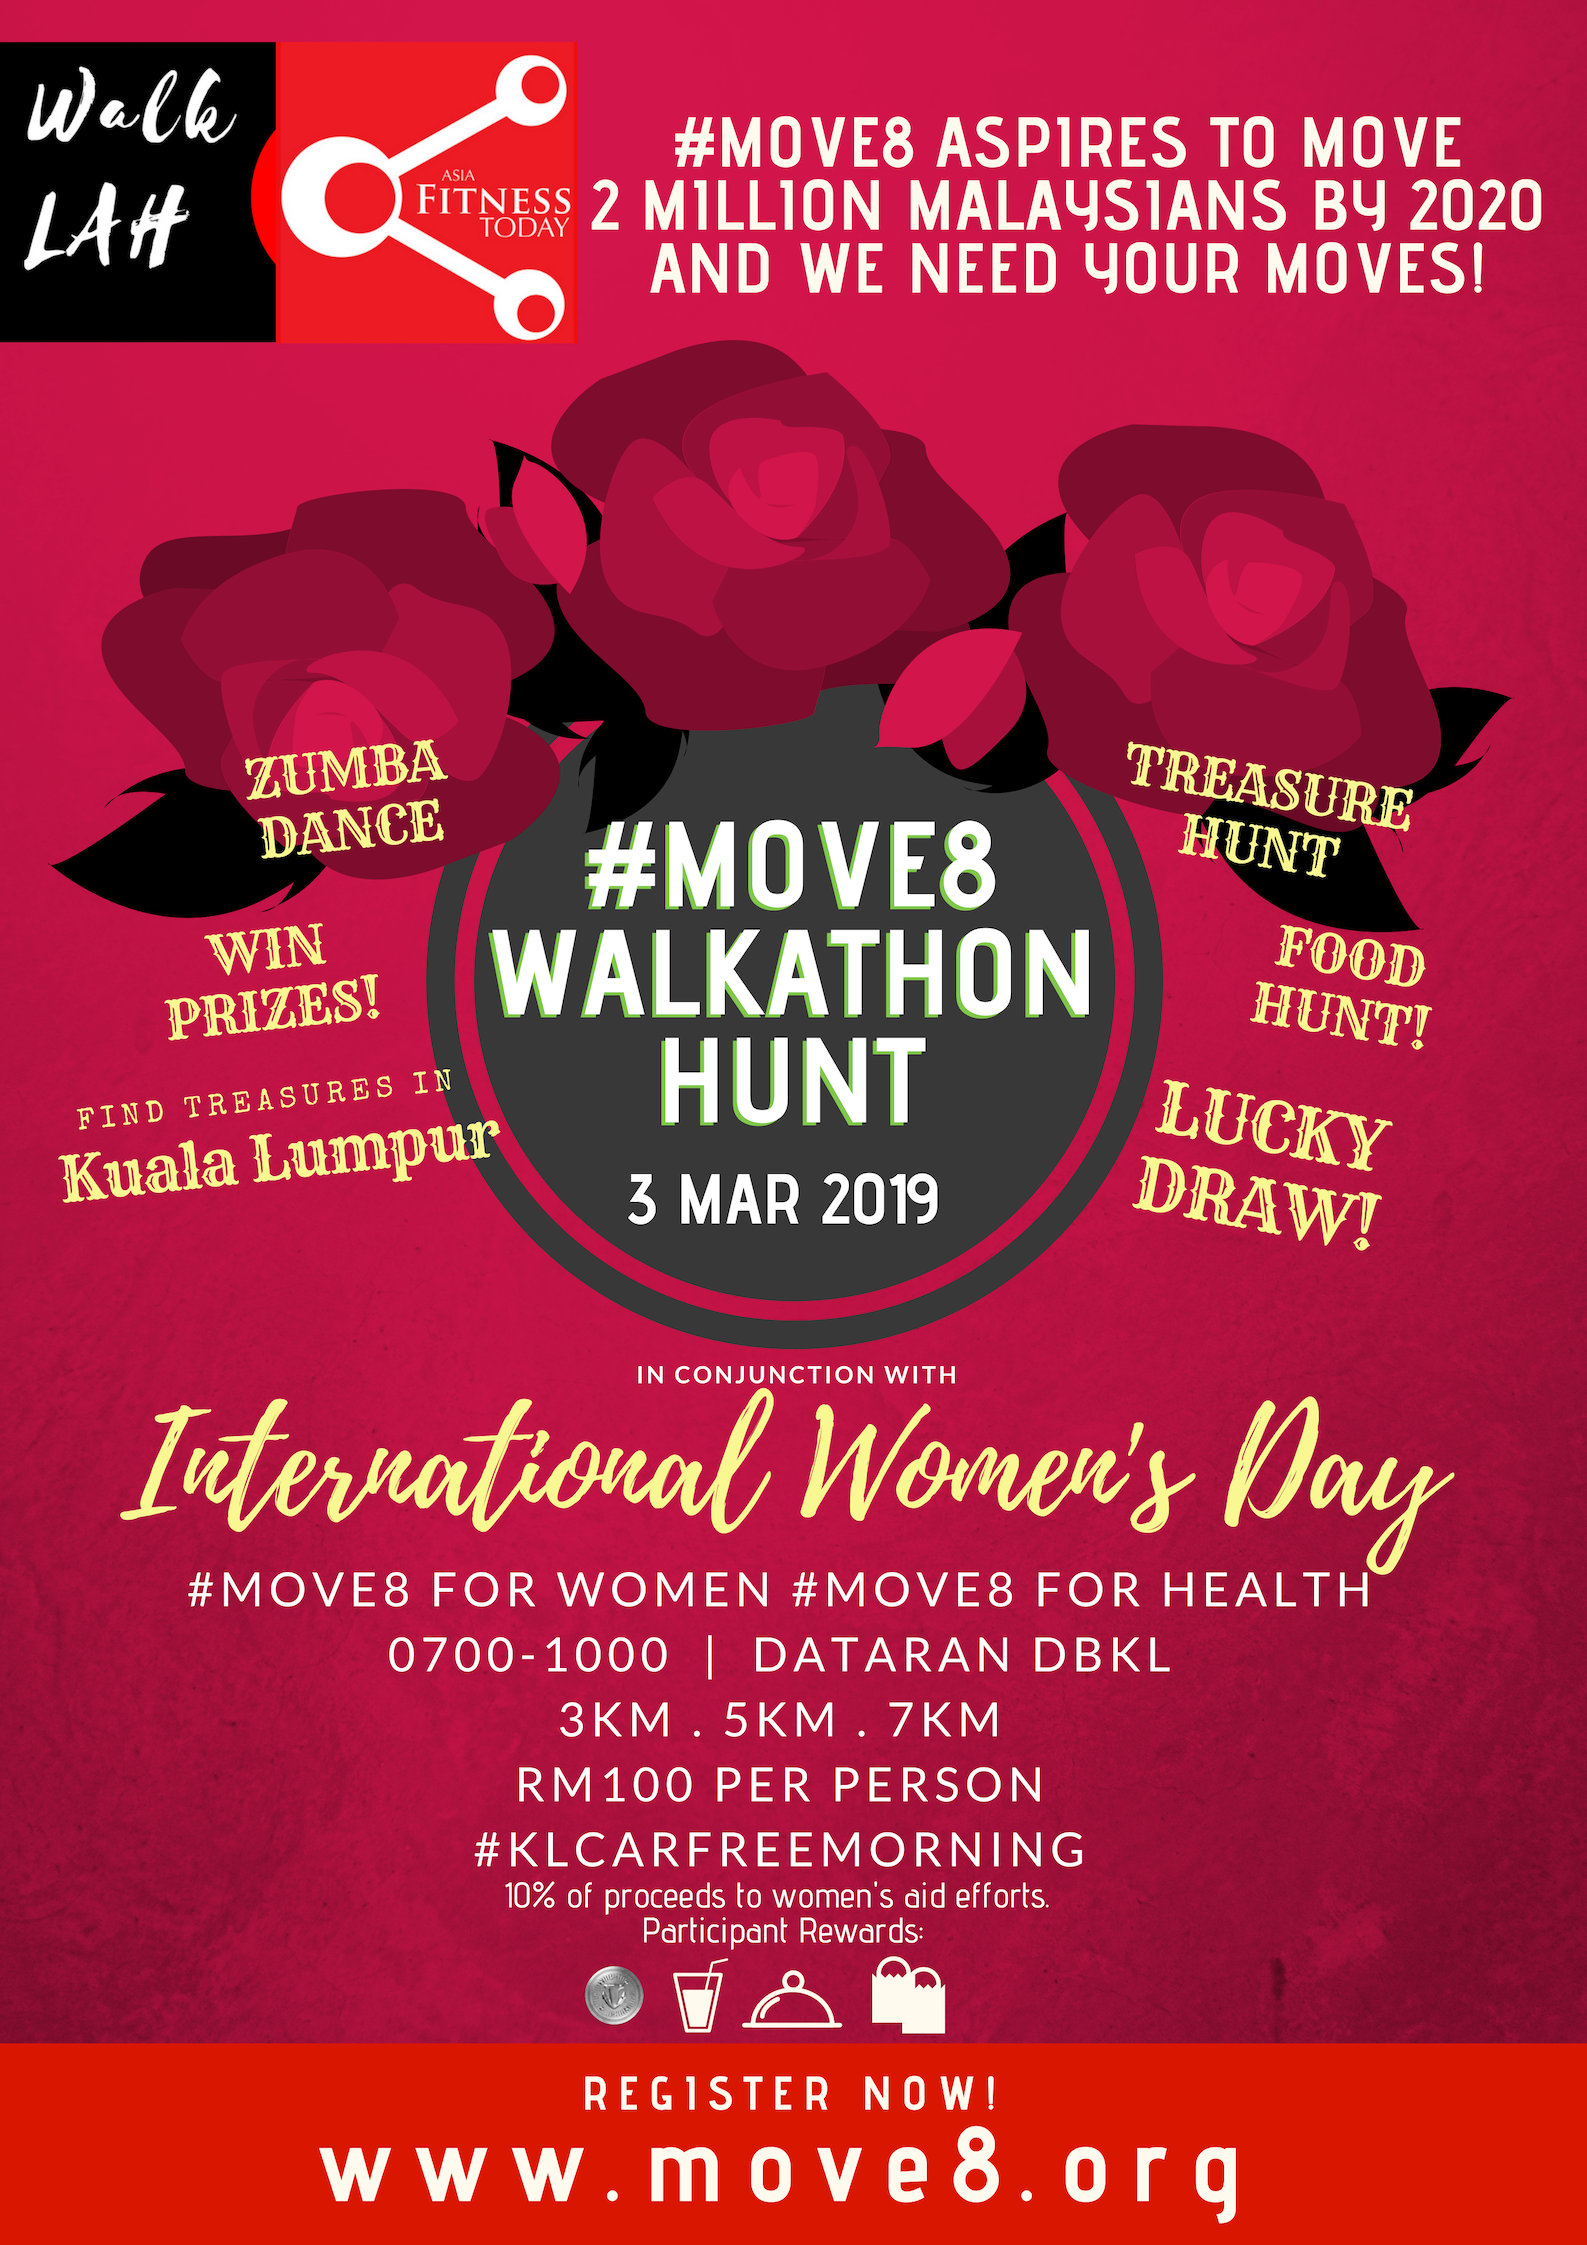 #Move8 7KM Walkathon on International Women's Day